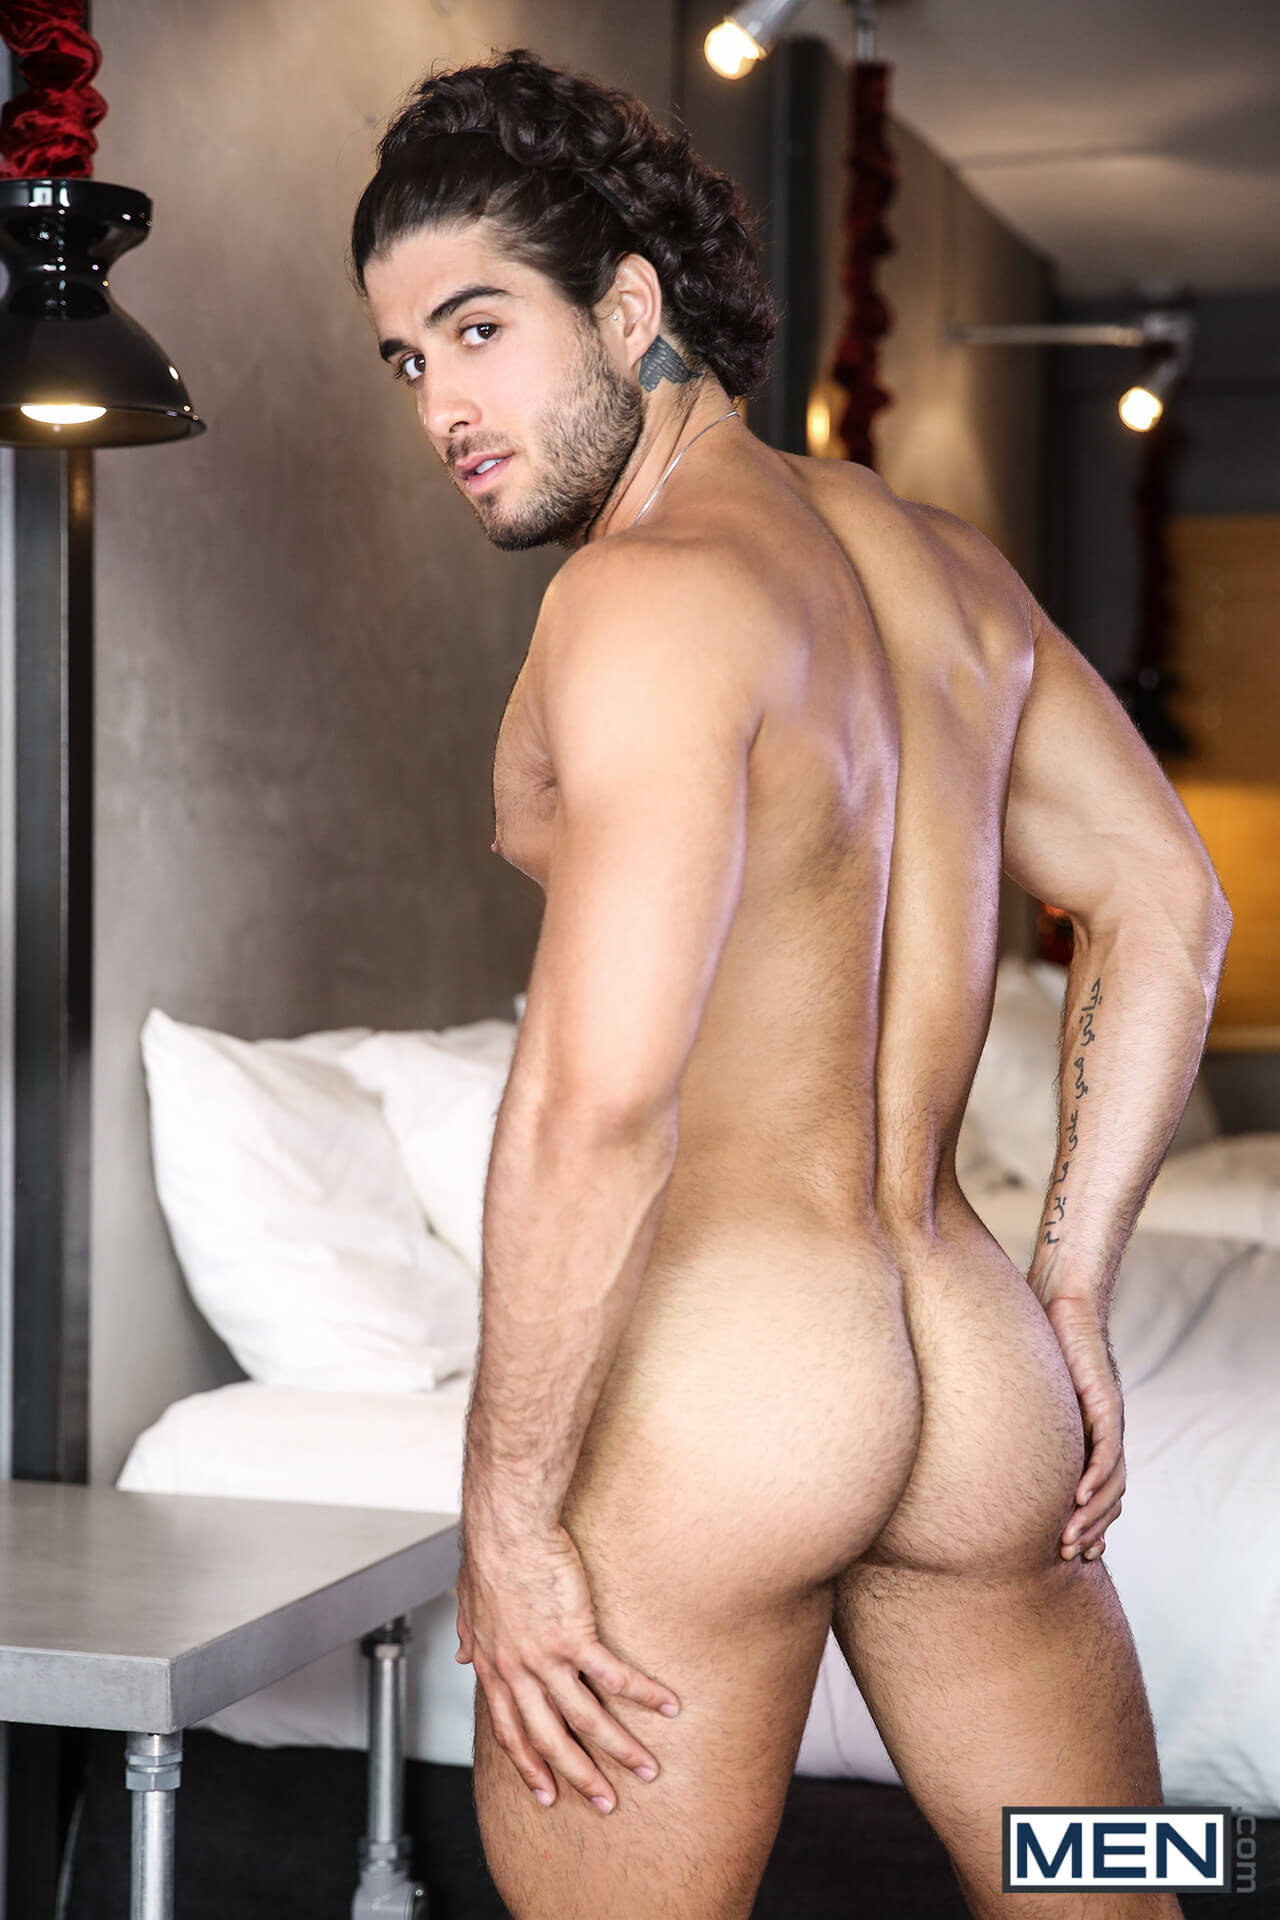 men str8 to gay training bro diego sans phenix saint gay porn blog image 7